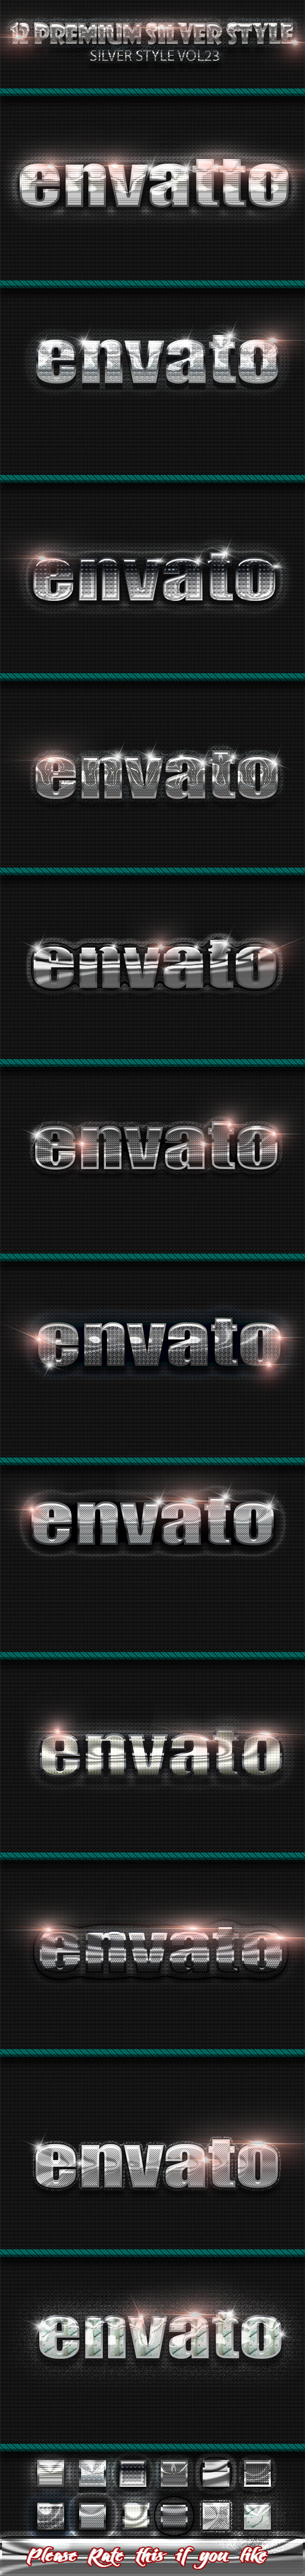 12 Photoshop SILVER Text Effect Styles Vol 23 - Text Effects Styles